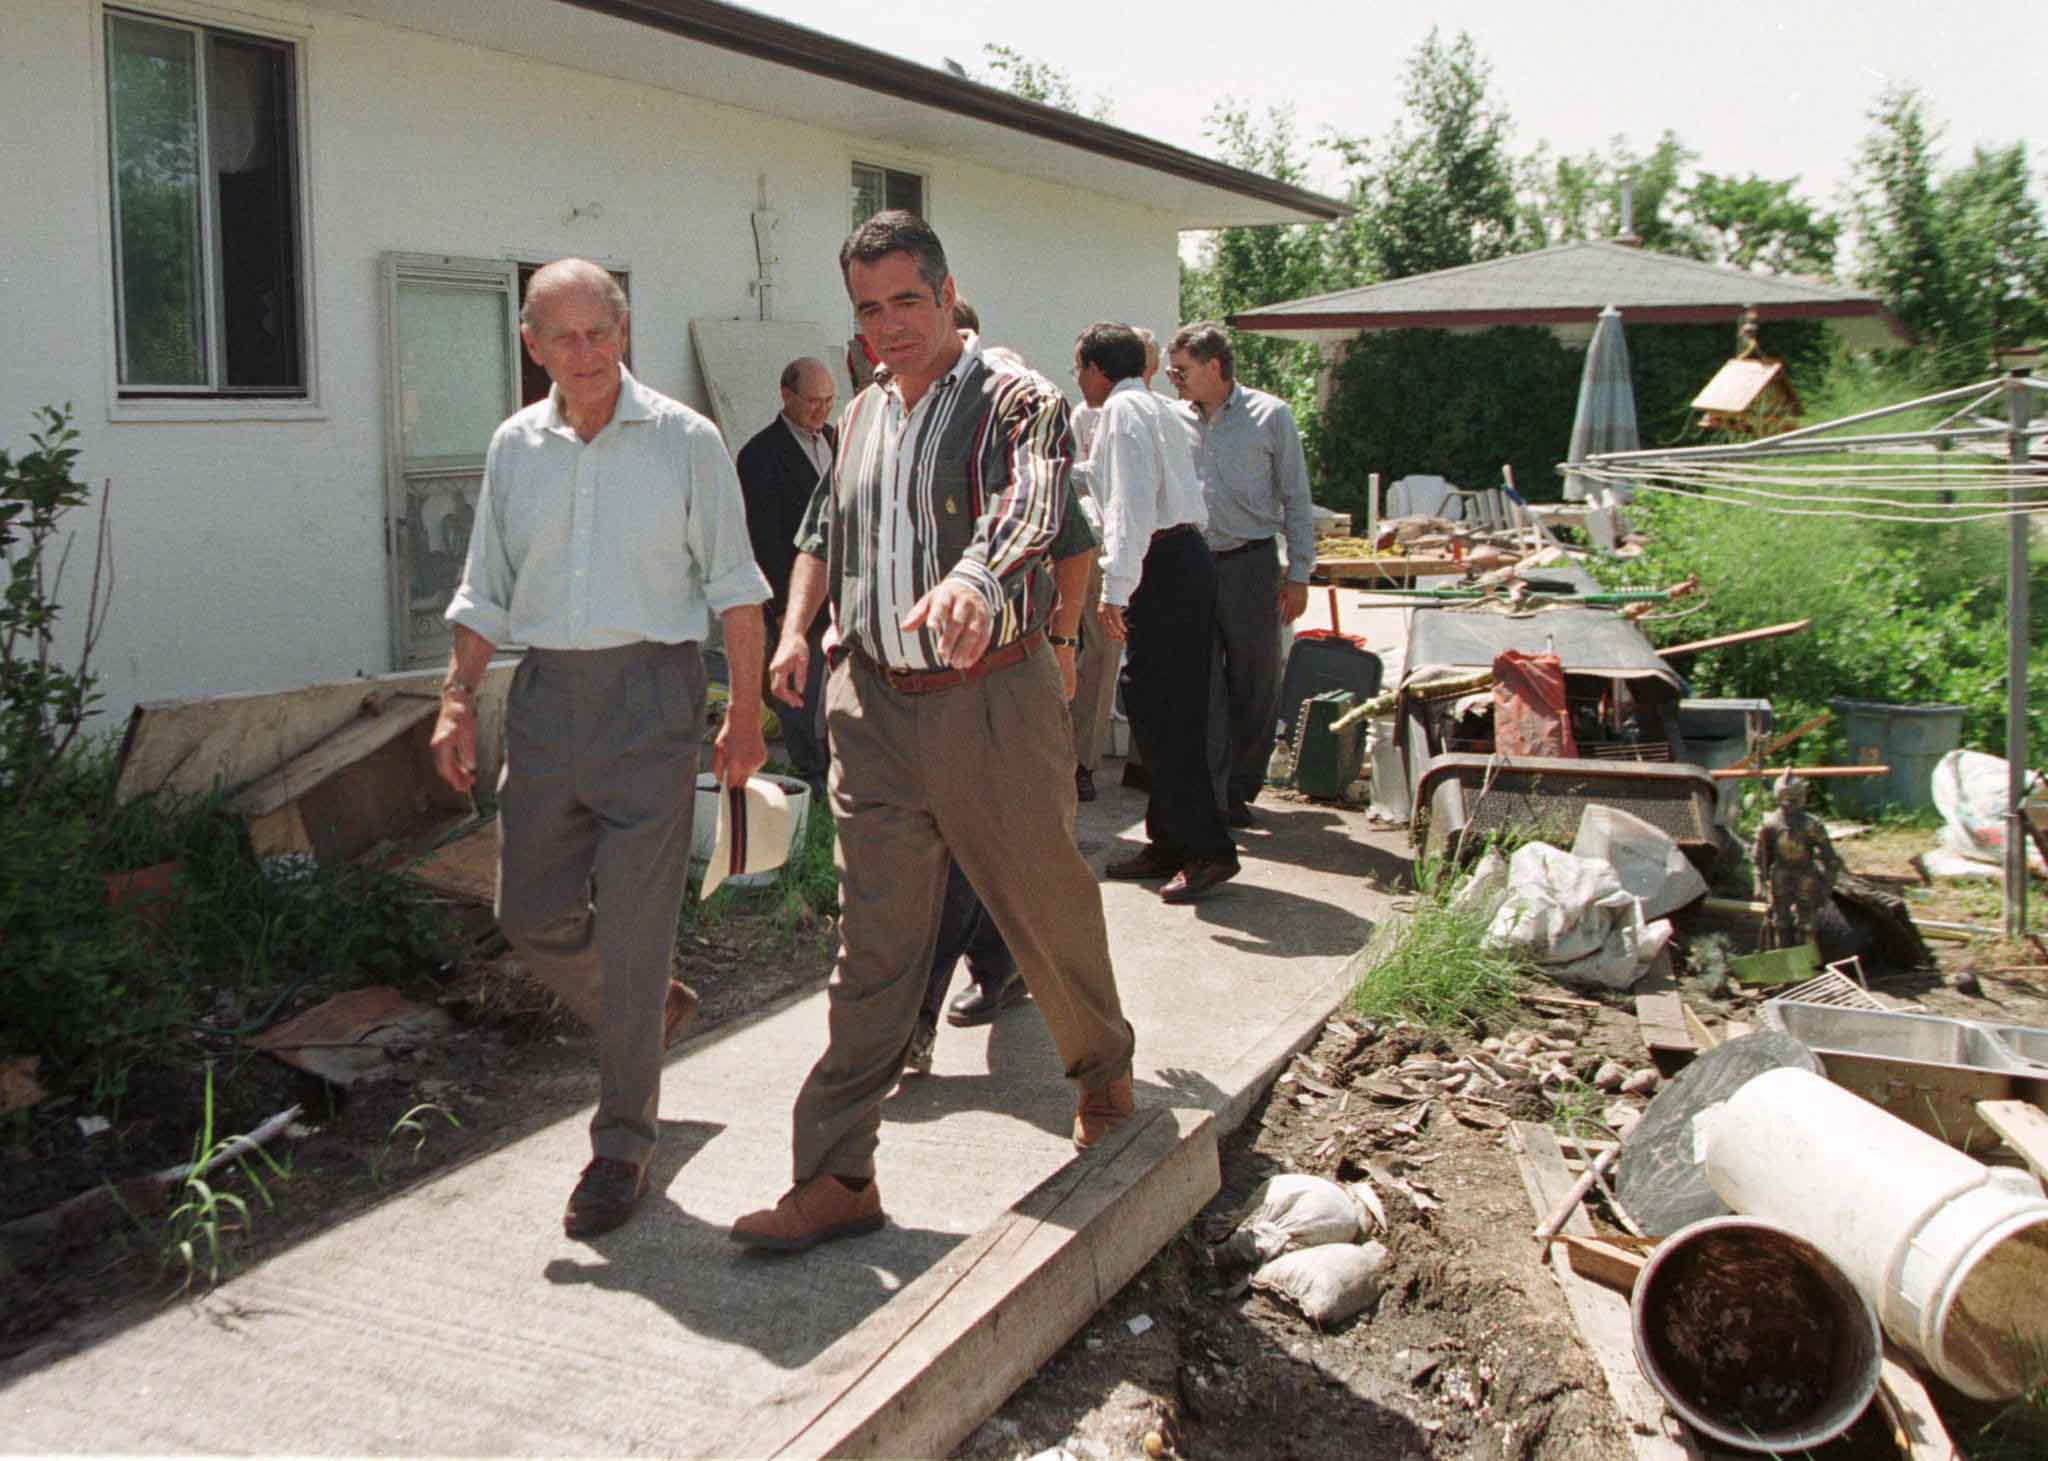 Prince Philip (left) surveys damage in the backyard of a home damaged by flooding of the Red River in 1997.